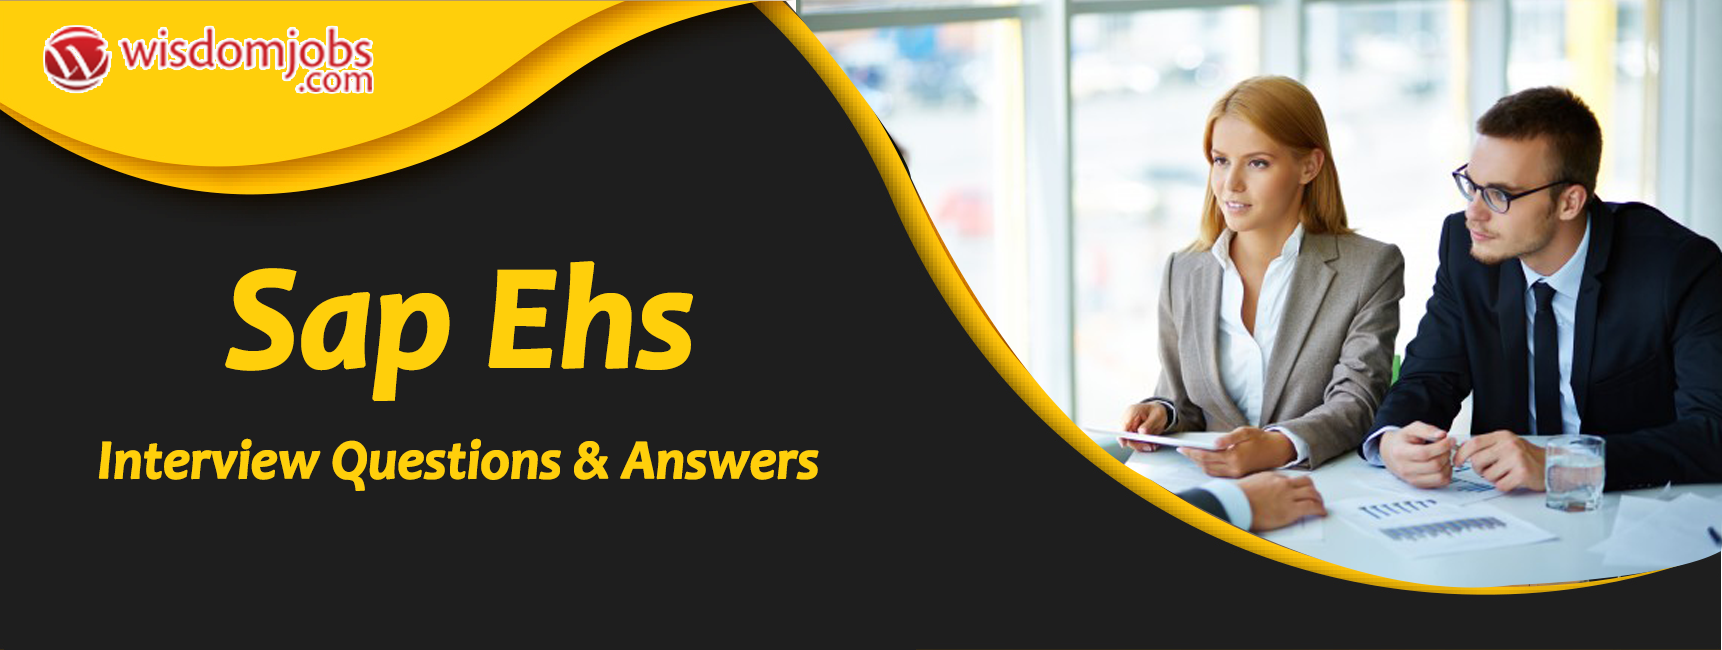 SAP EHS Interview Questions